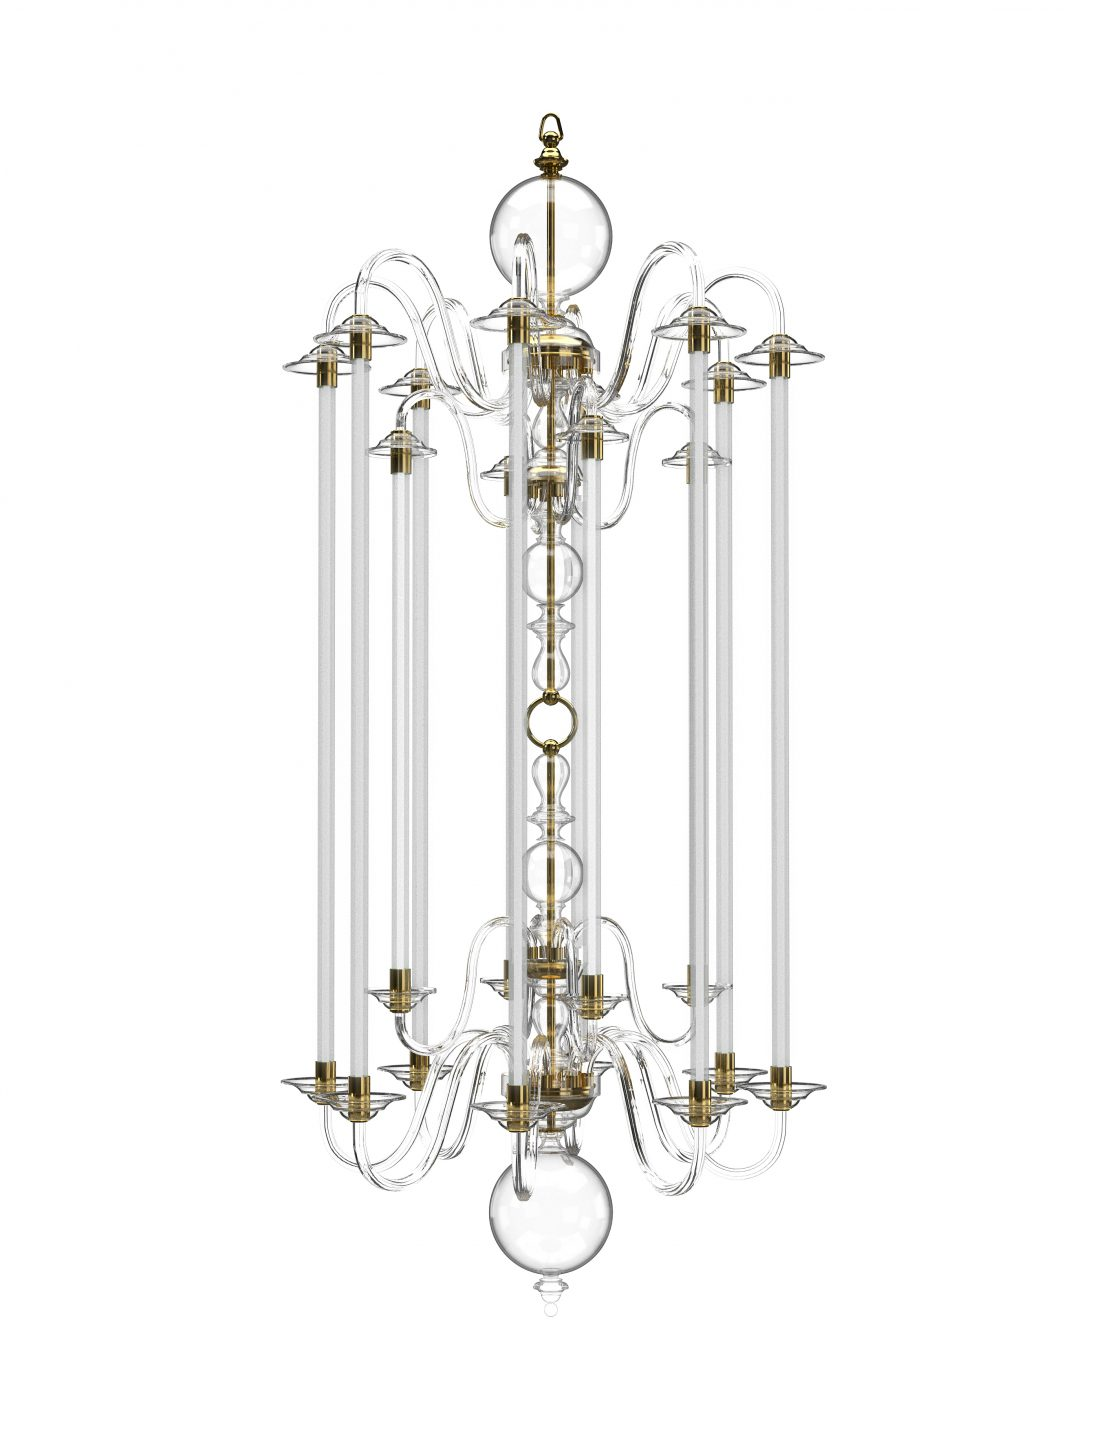 Preciosa Echo Chandelier Dutch Classic Glass Crafts Czech republic Tjep Studio